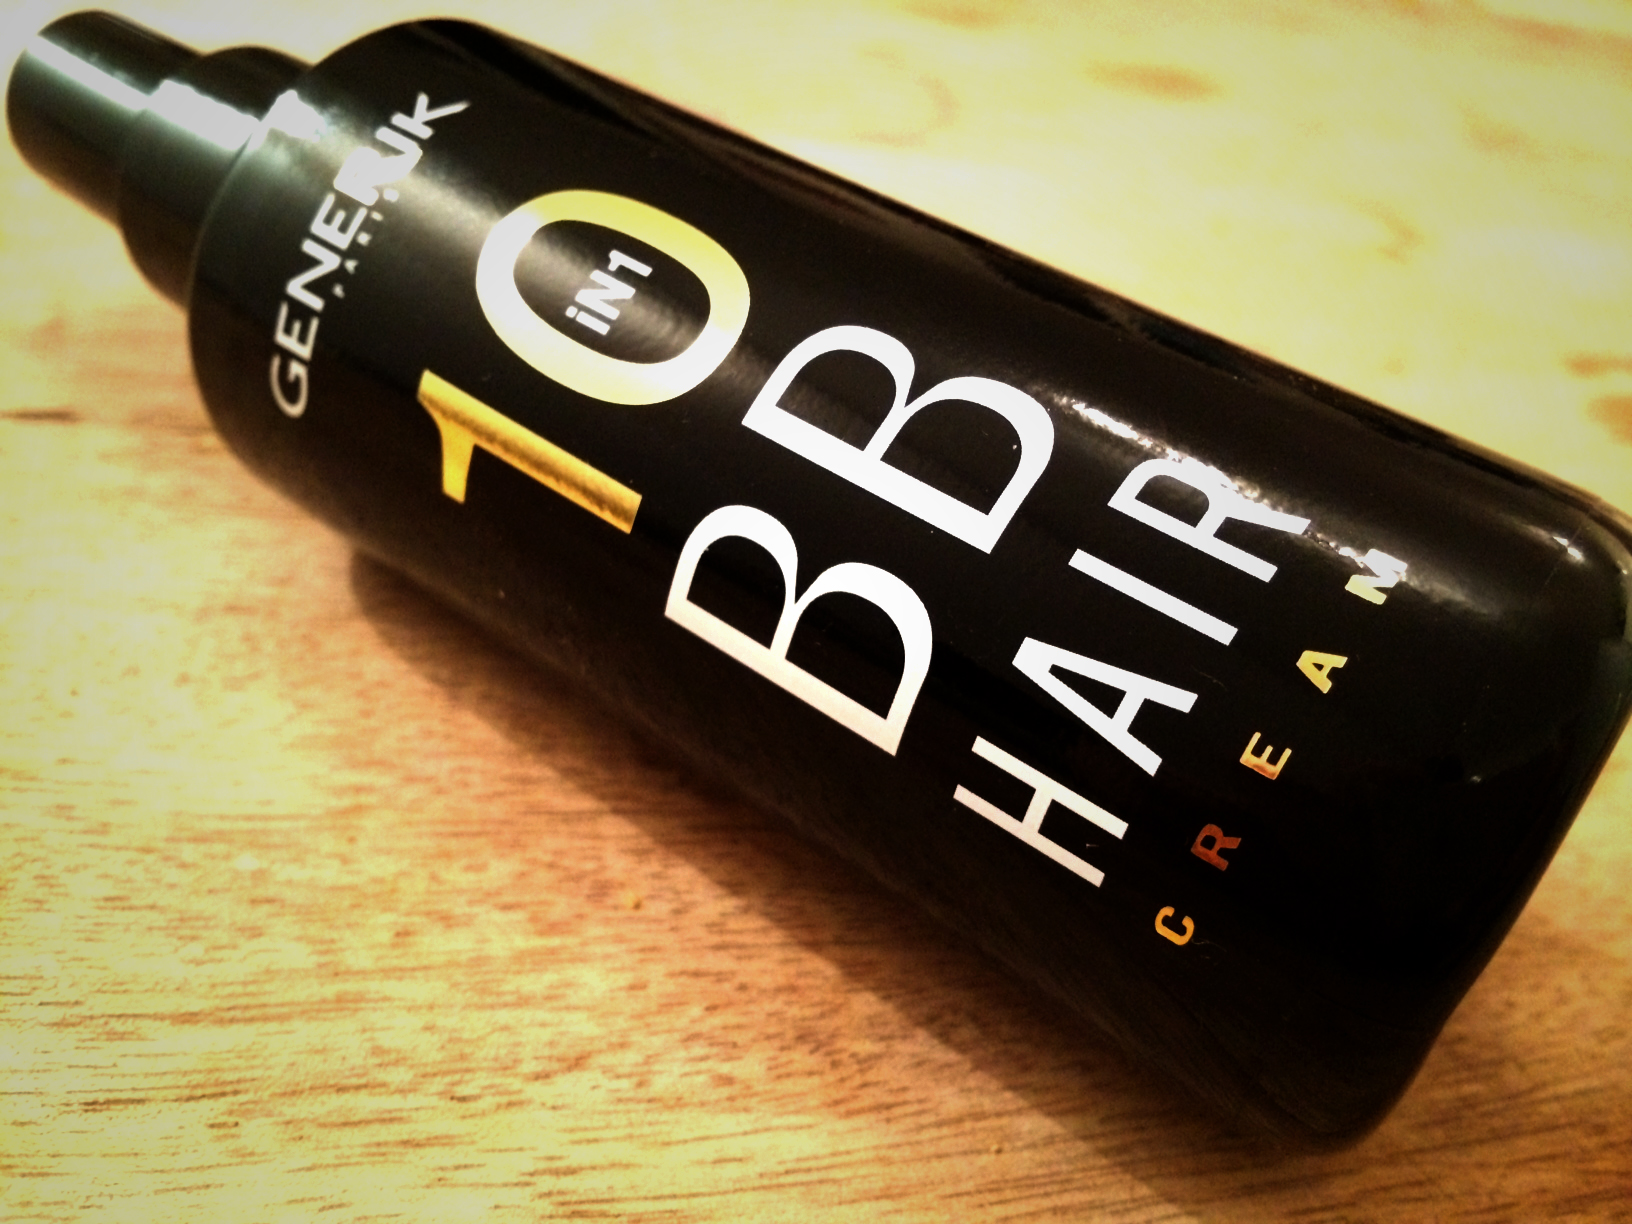 BB Hair Cream Generik